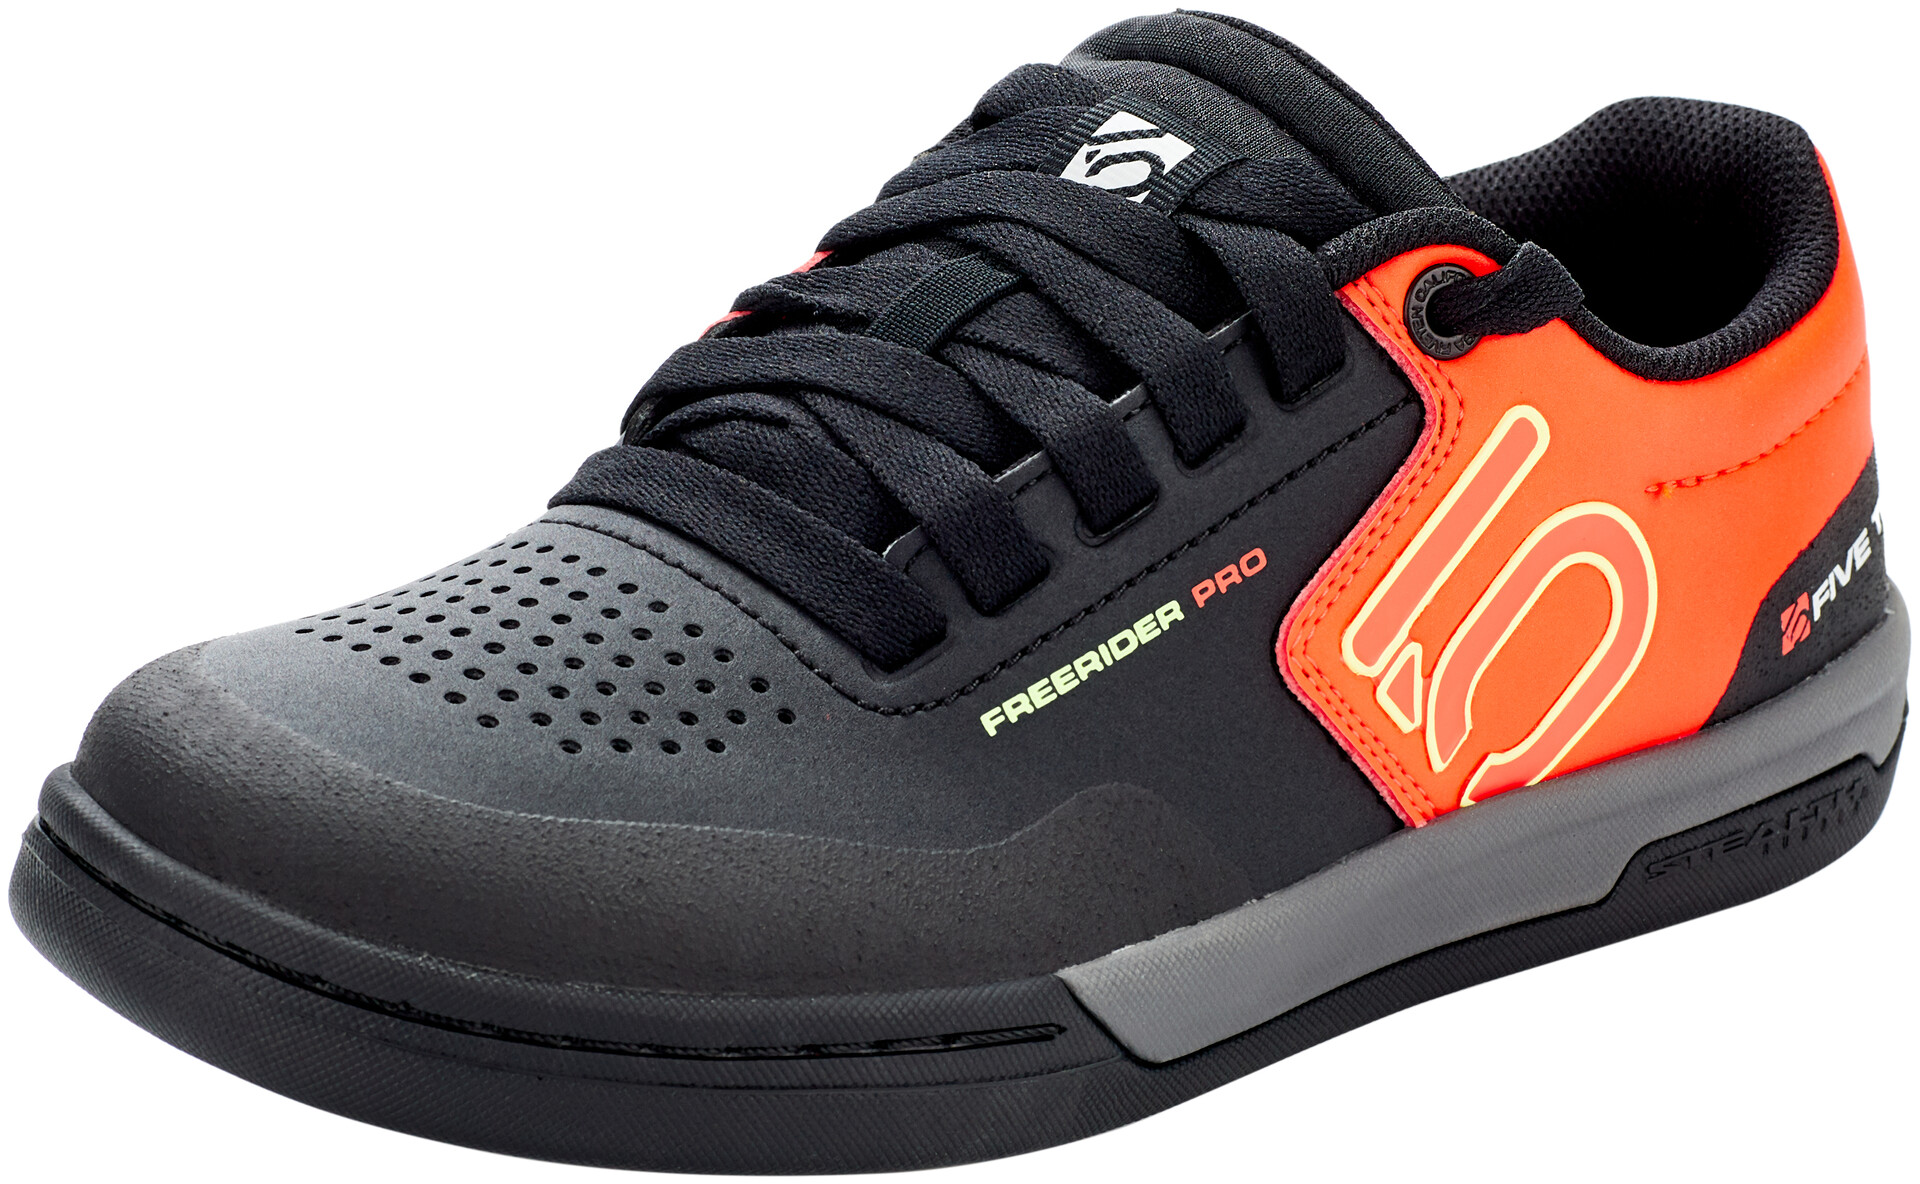 adidas Five Ten Freerider Pro Chaussures pour VTT Homme, core blacksignal greensolar red